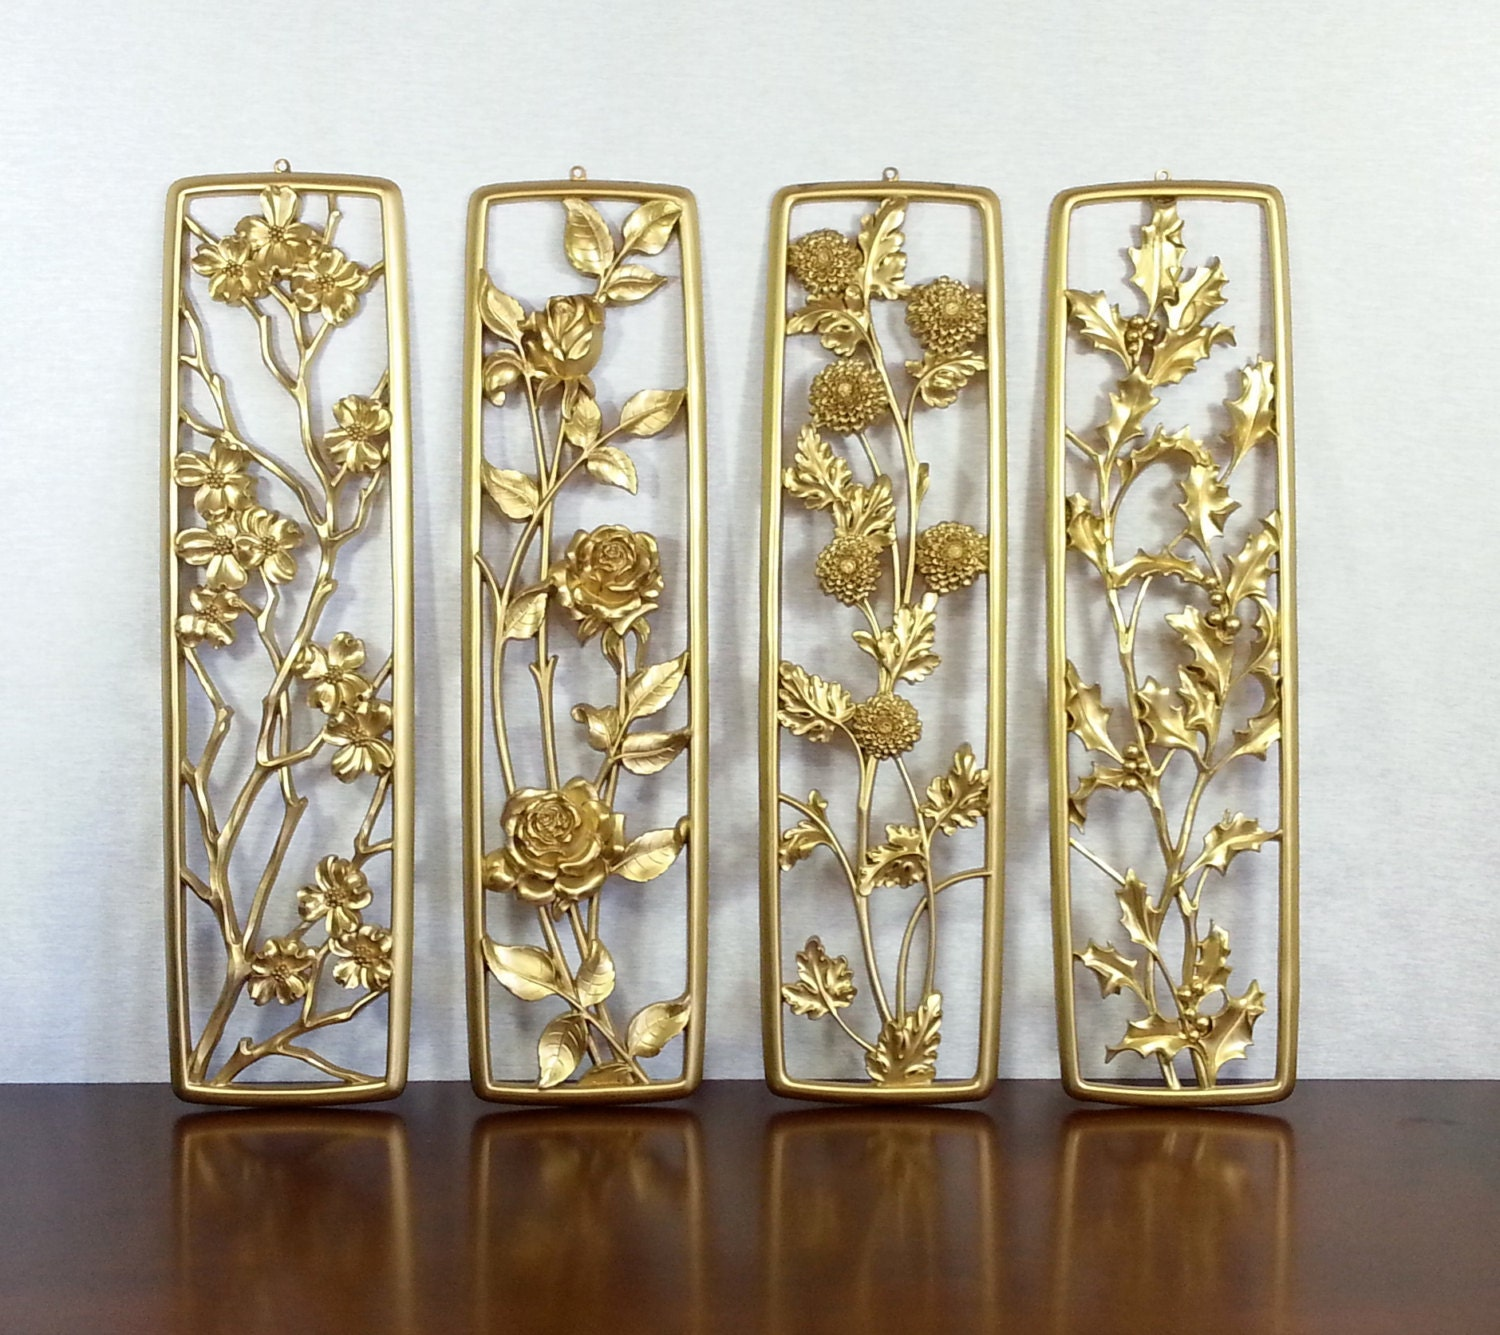 Vintage 1950 S Syroco Four Seasons Gold Finish Large Wall